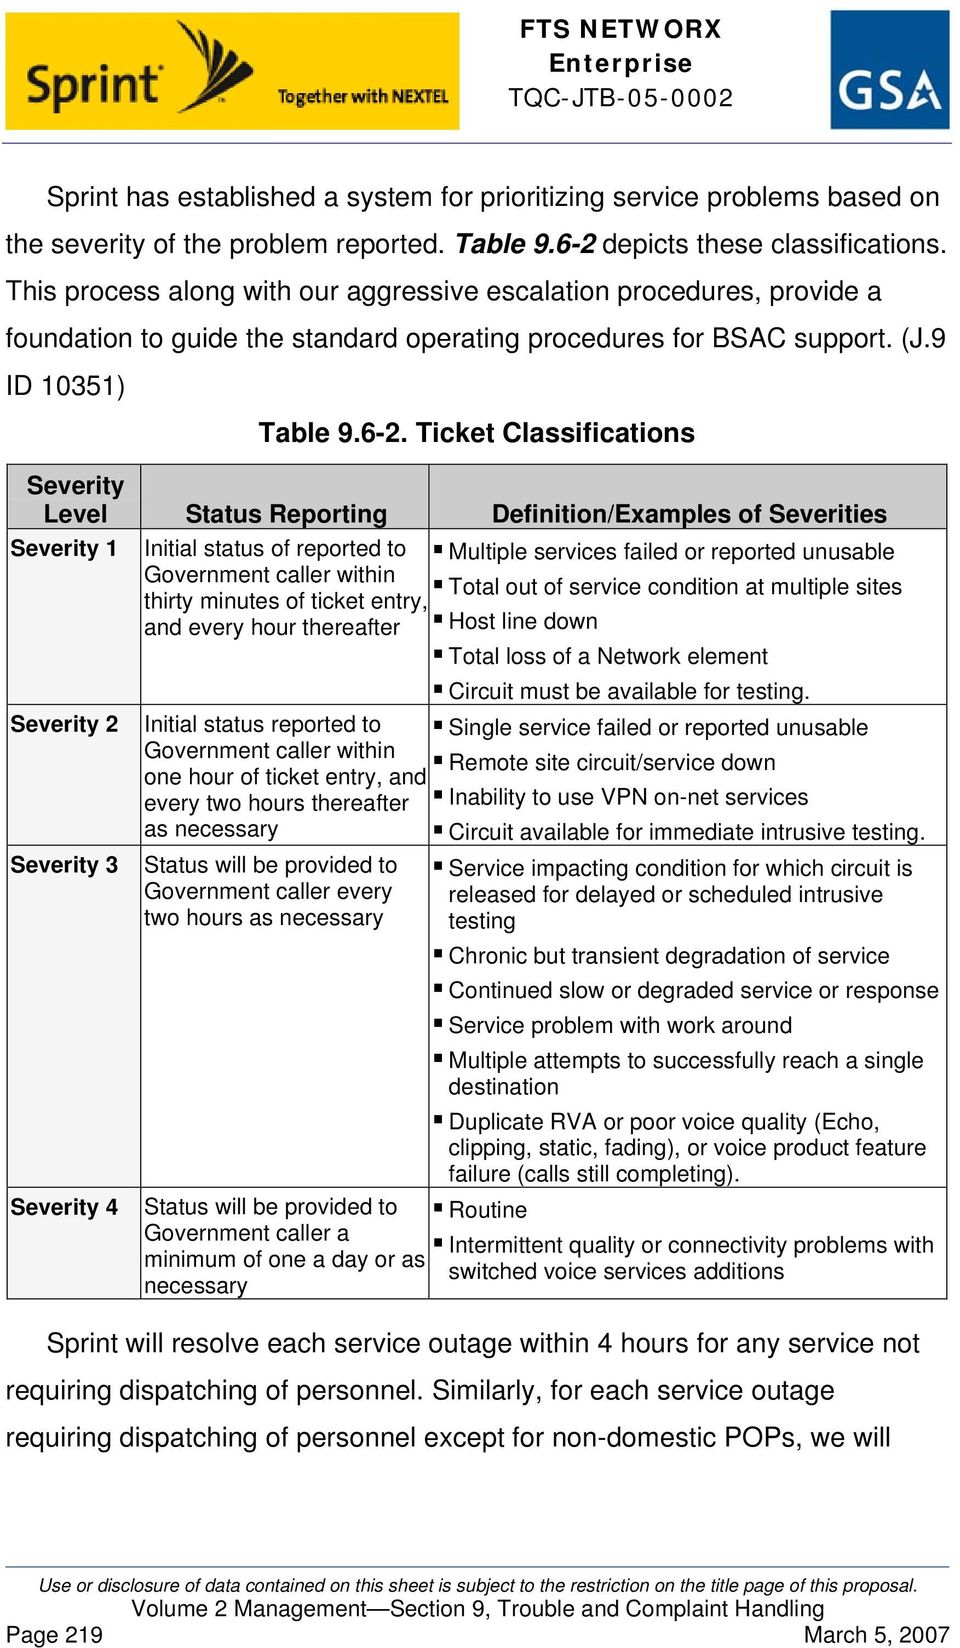 Ticket Classifications Severity Level Status Reporting Definition/Examples of Severities Severity 1 Initial status of reported to Multiple services failed or reported unusable Government caller